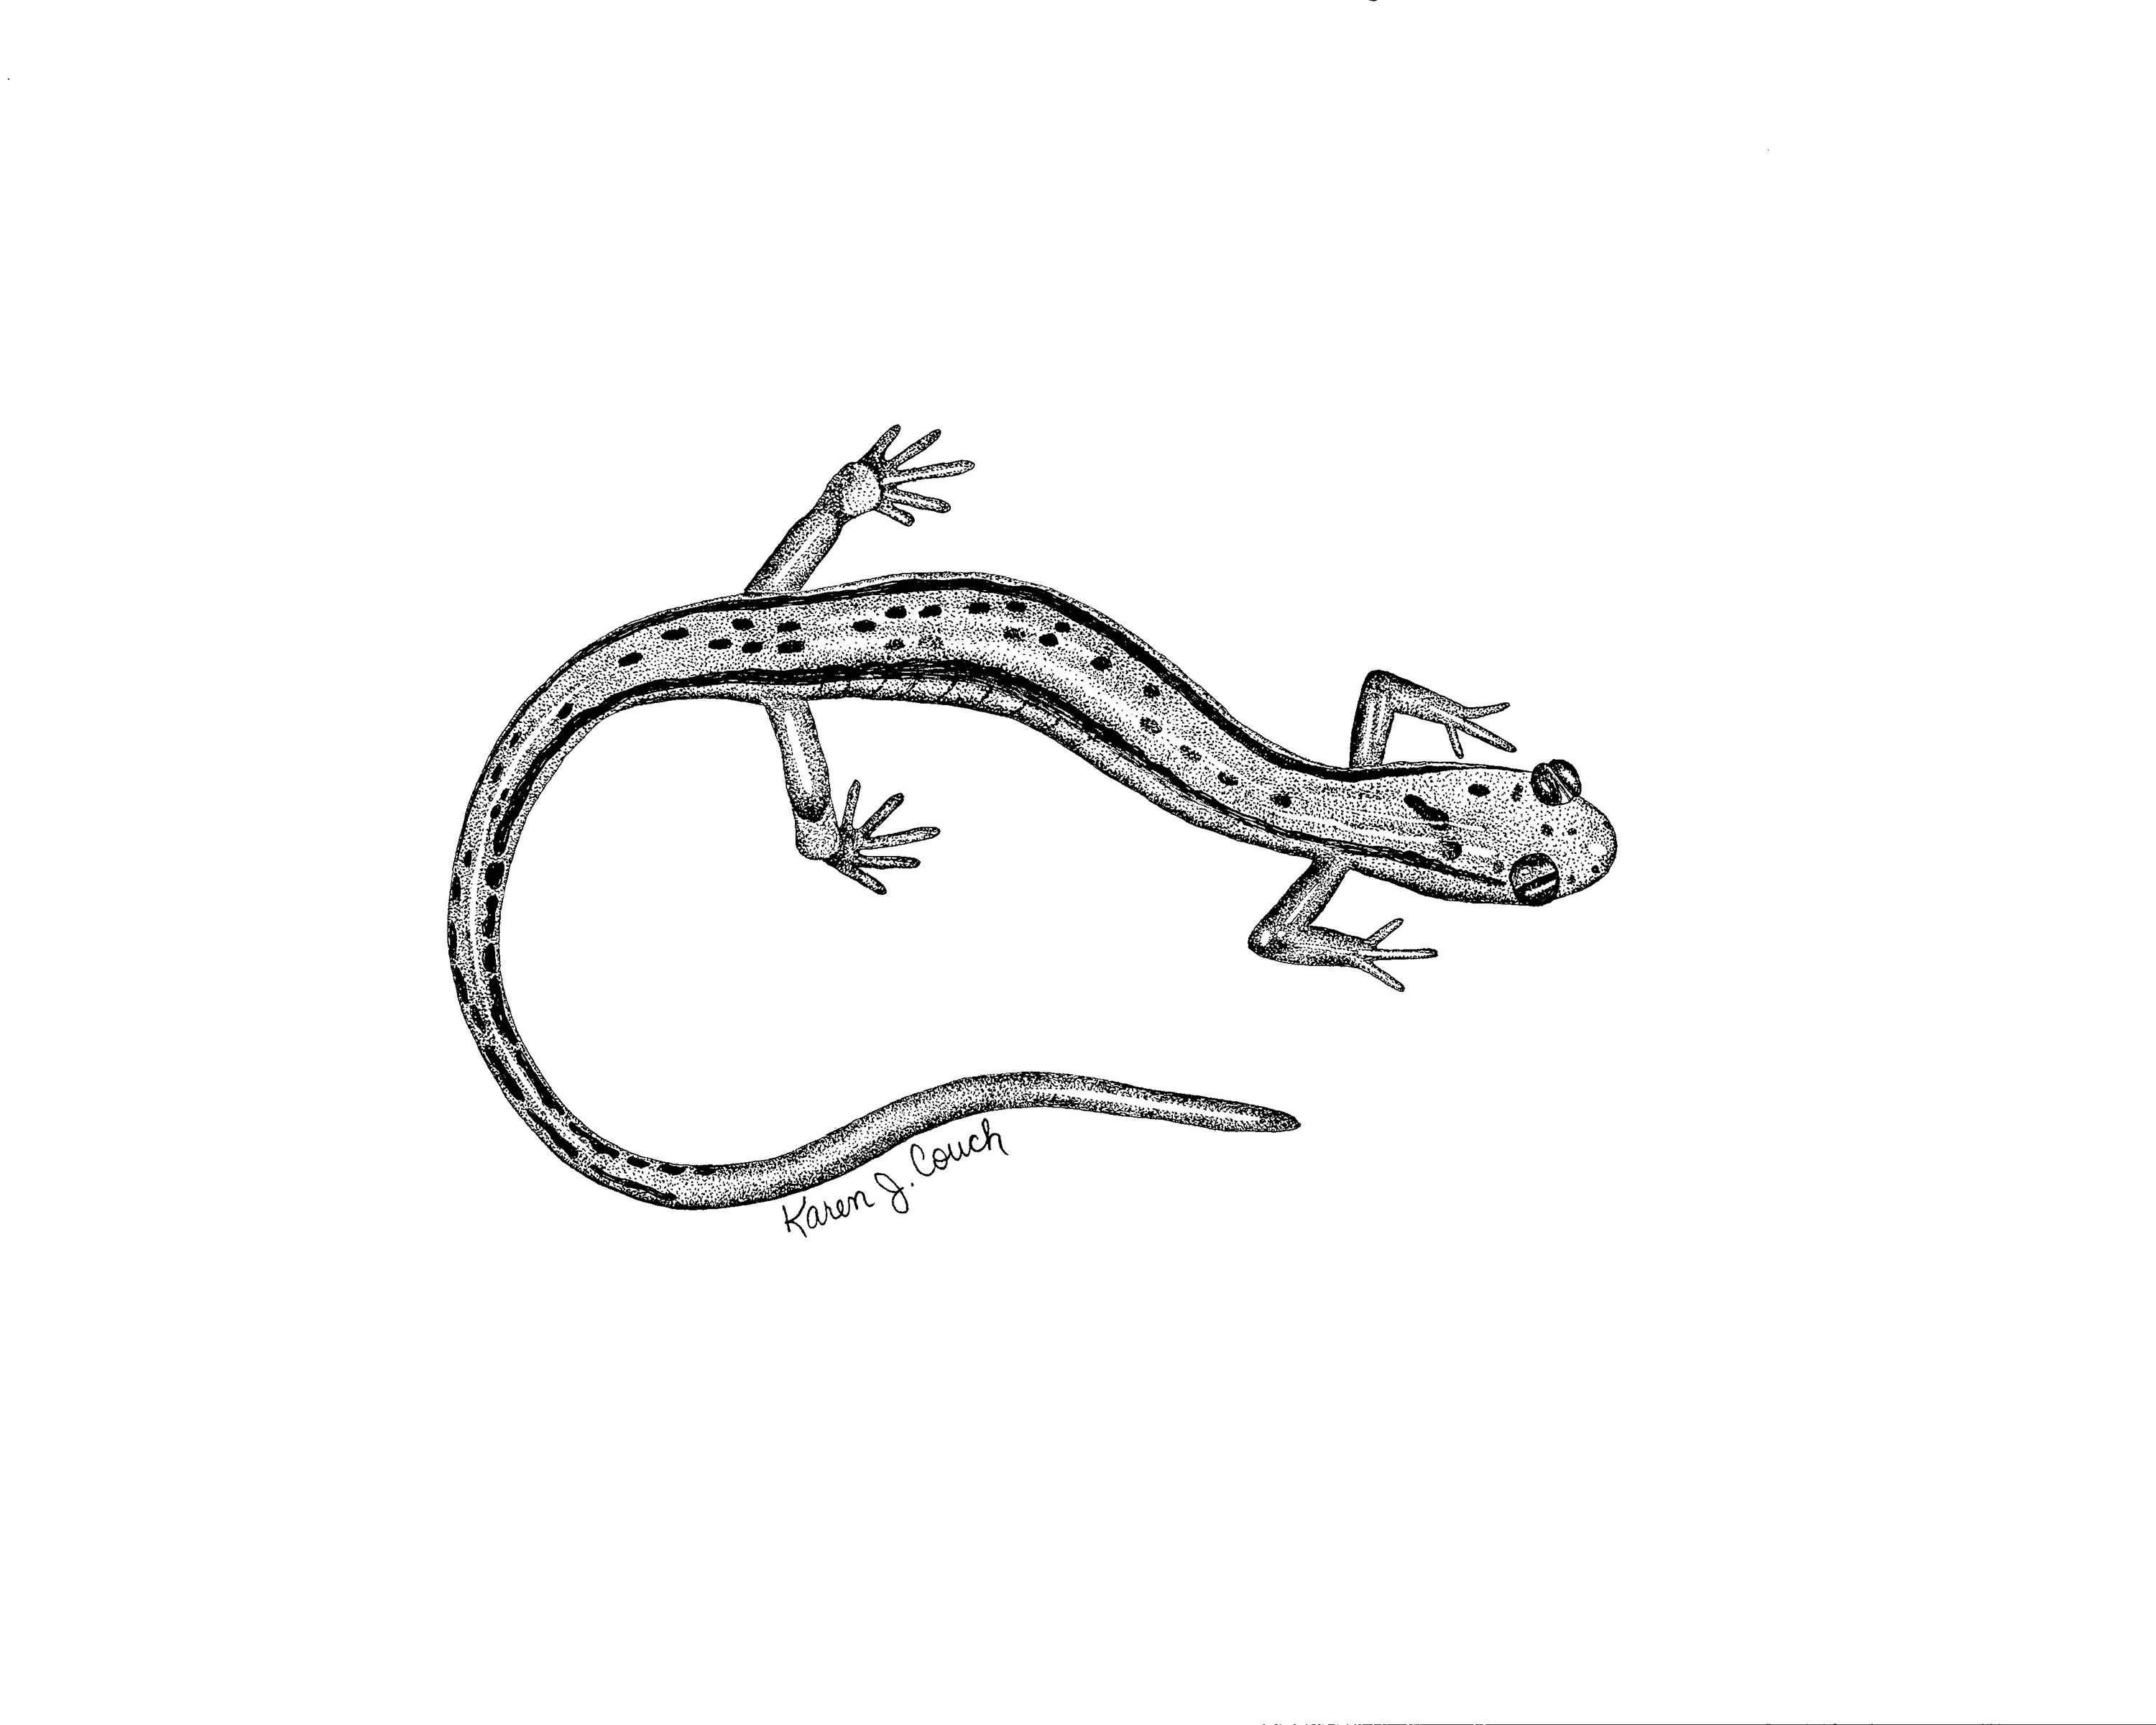 Black And White Line Art : File line art black and white drawing two lined salamander